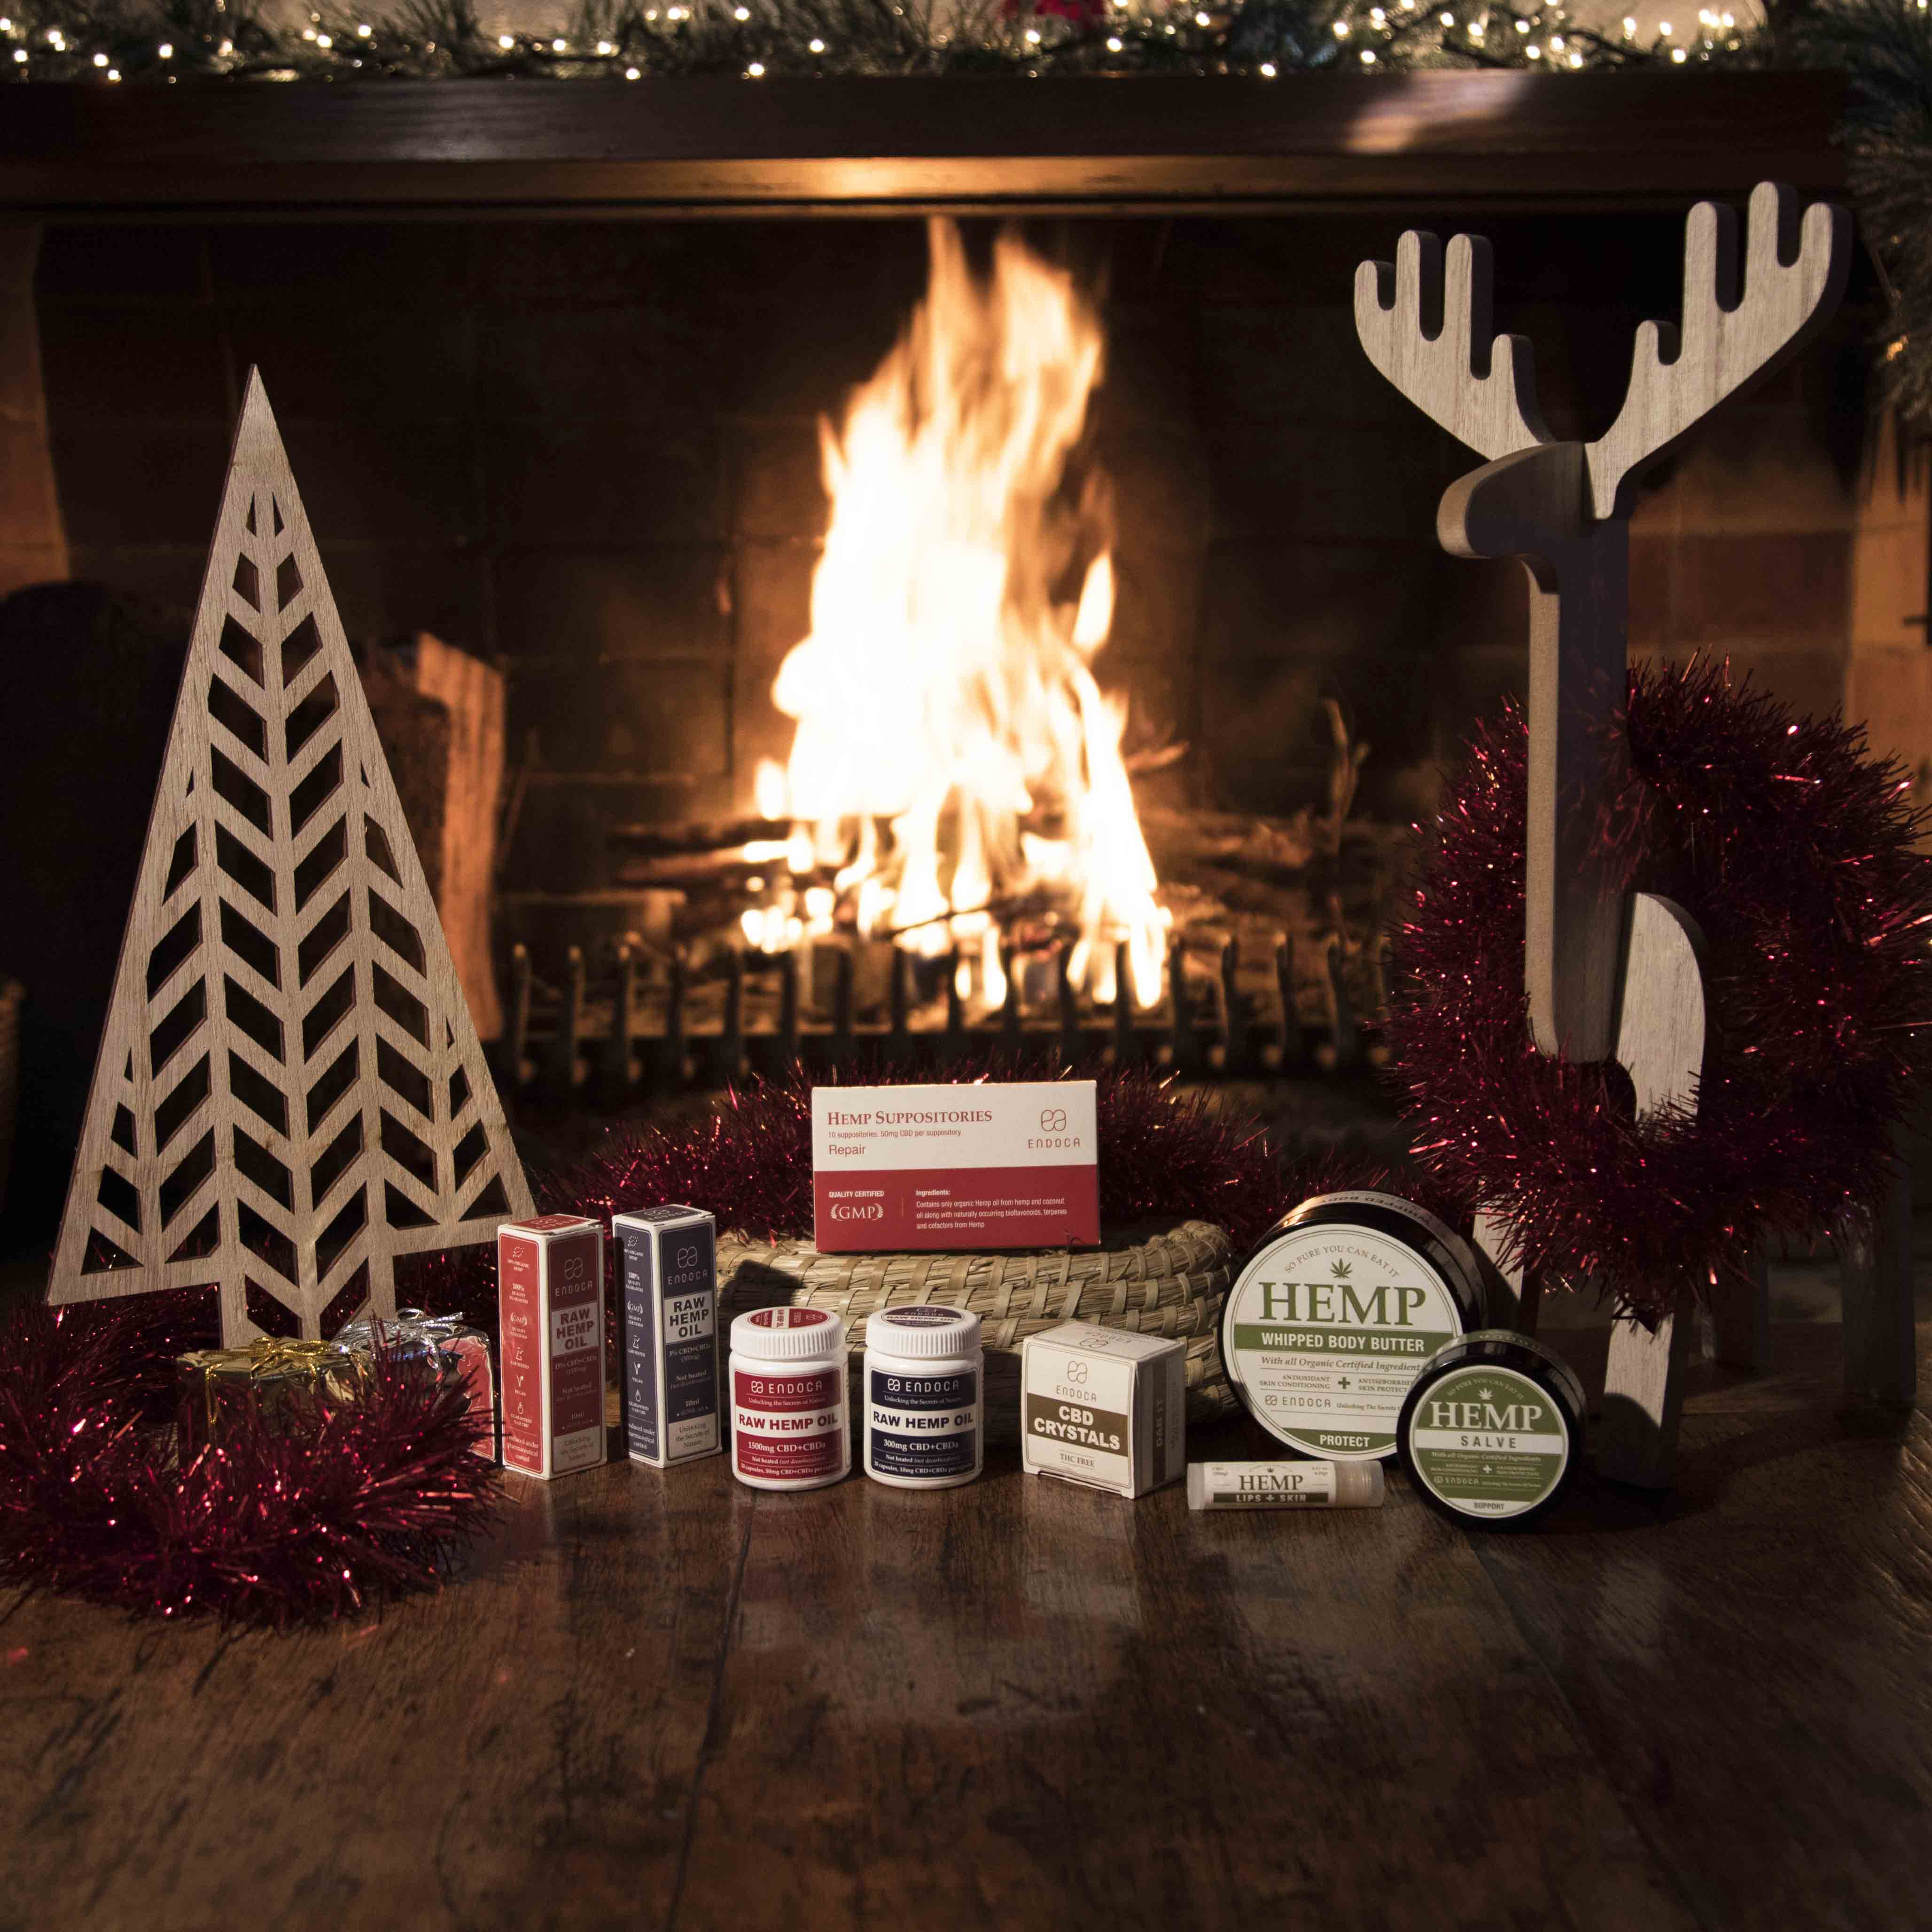 Endoca products near a Christmas fire